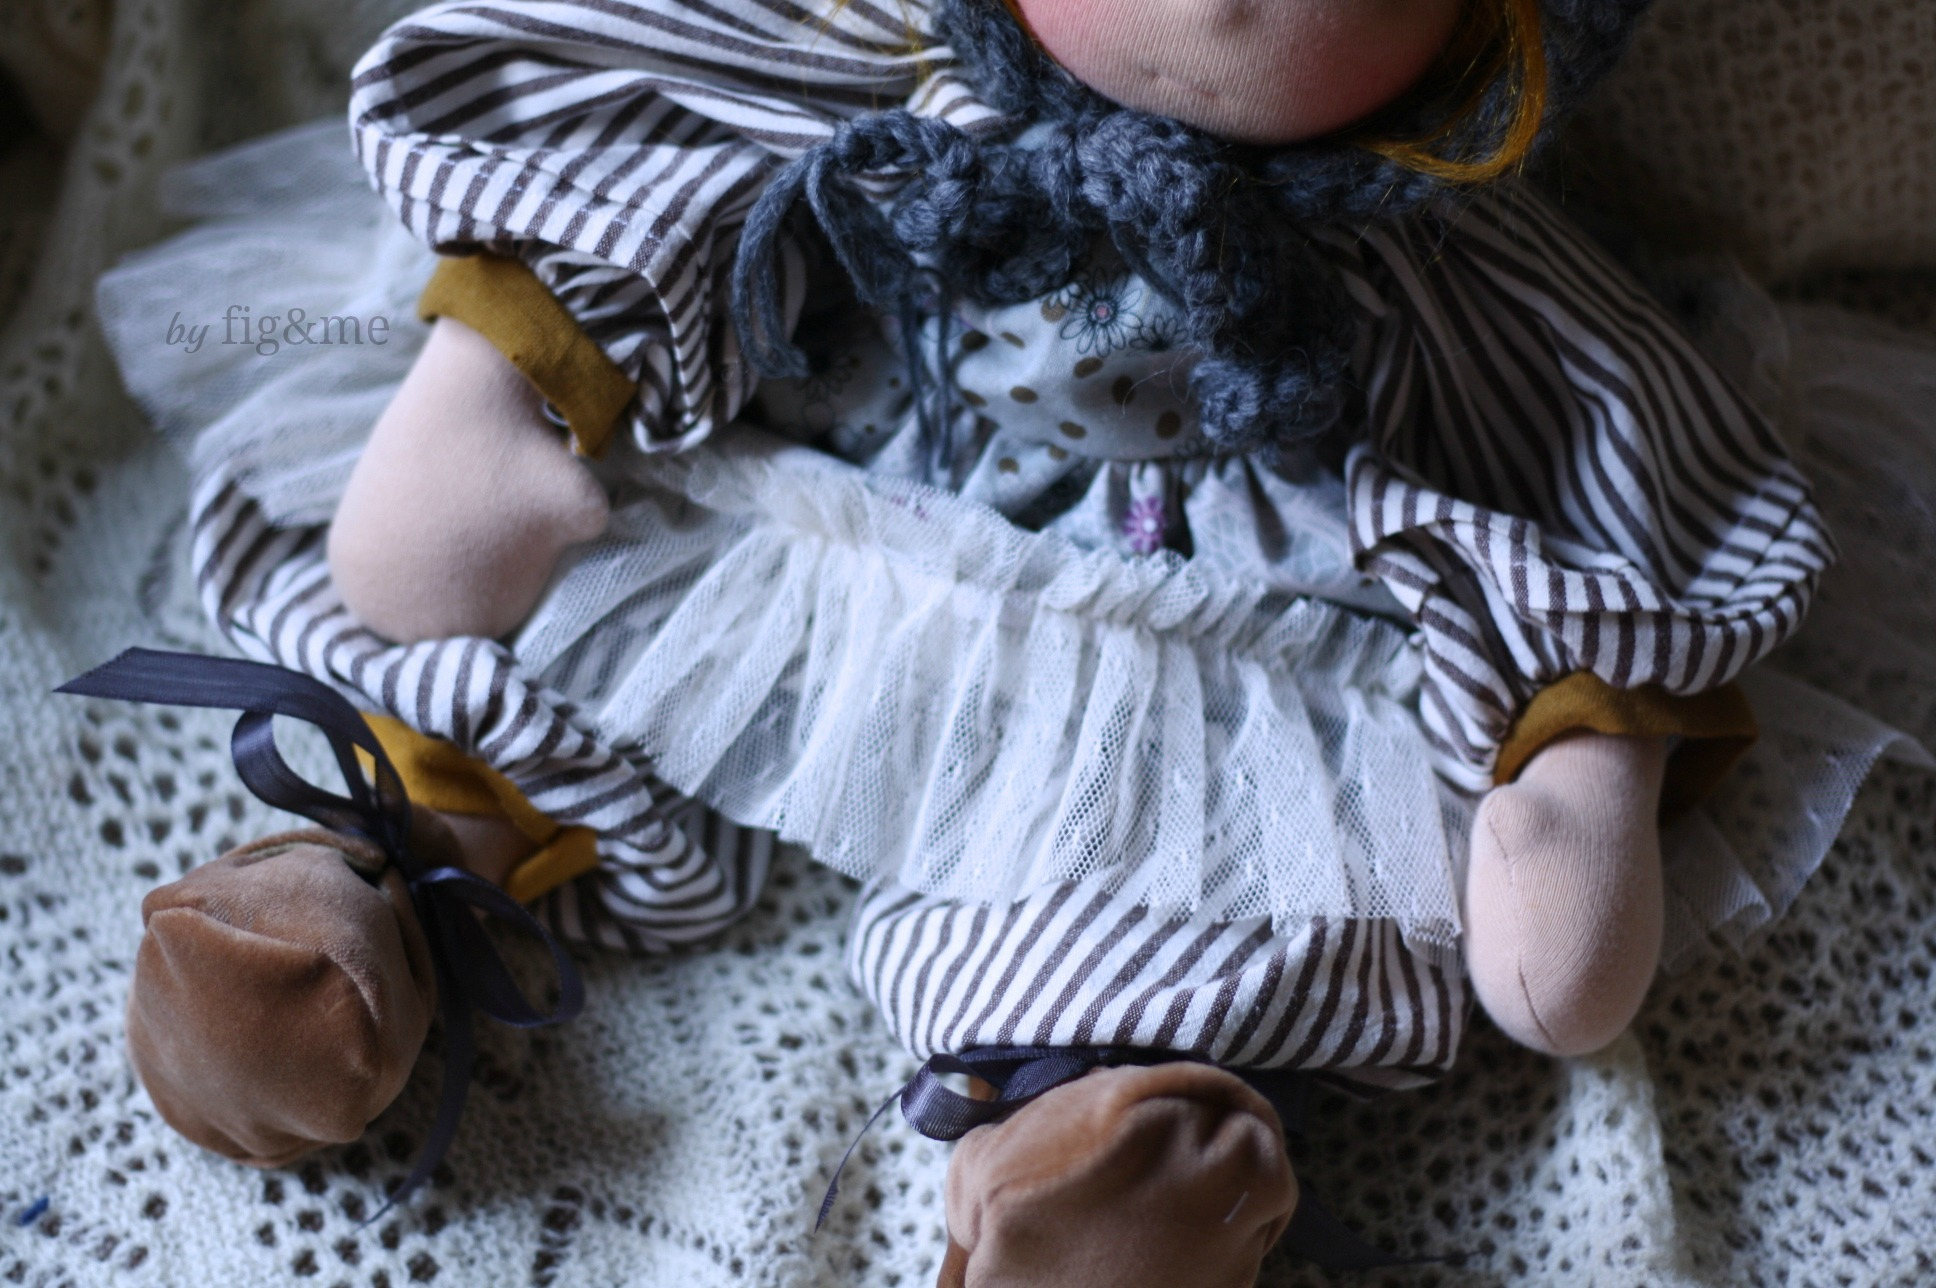 Tula, a handmade natural doll by Fig and me.